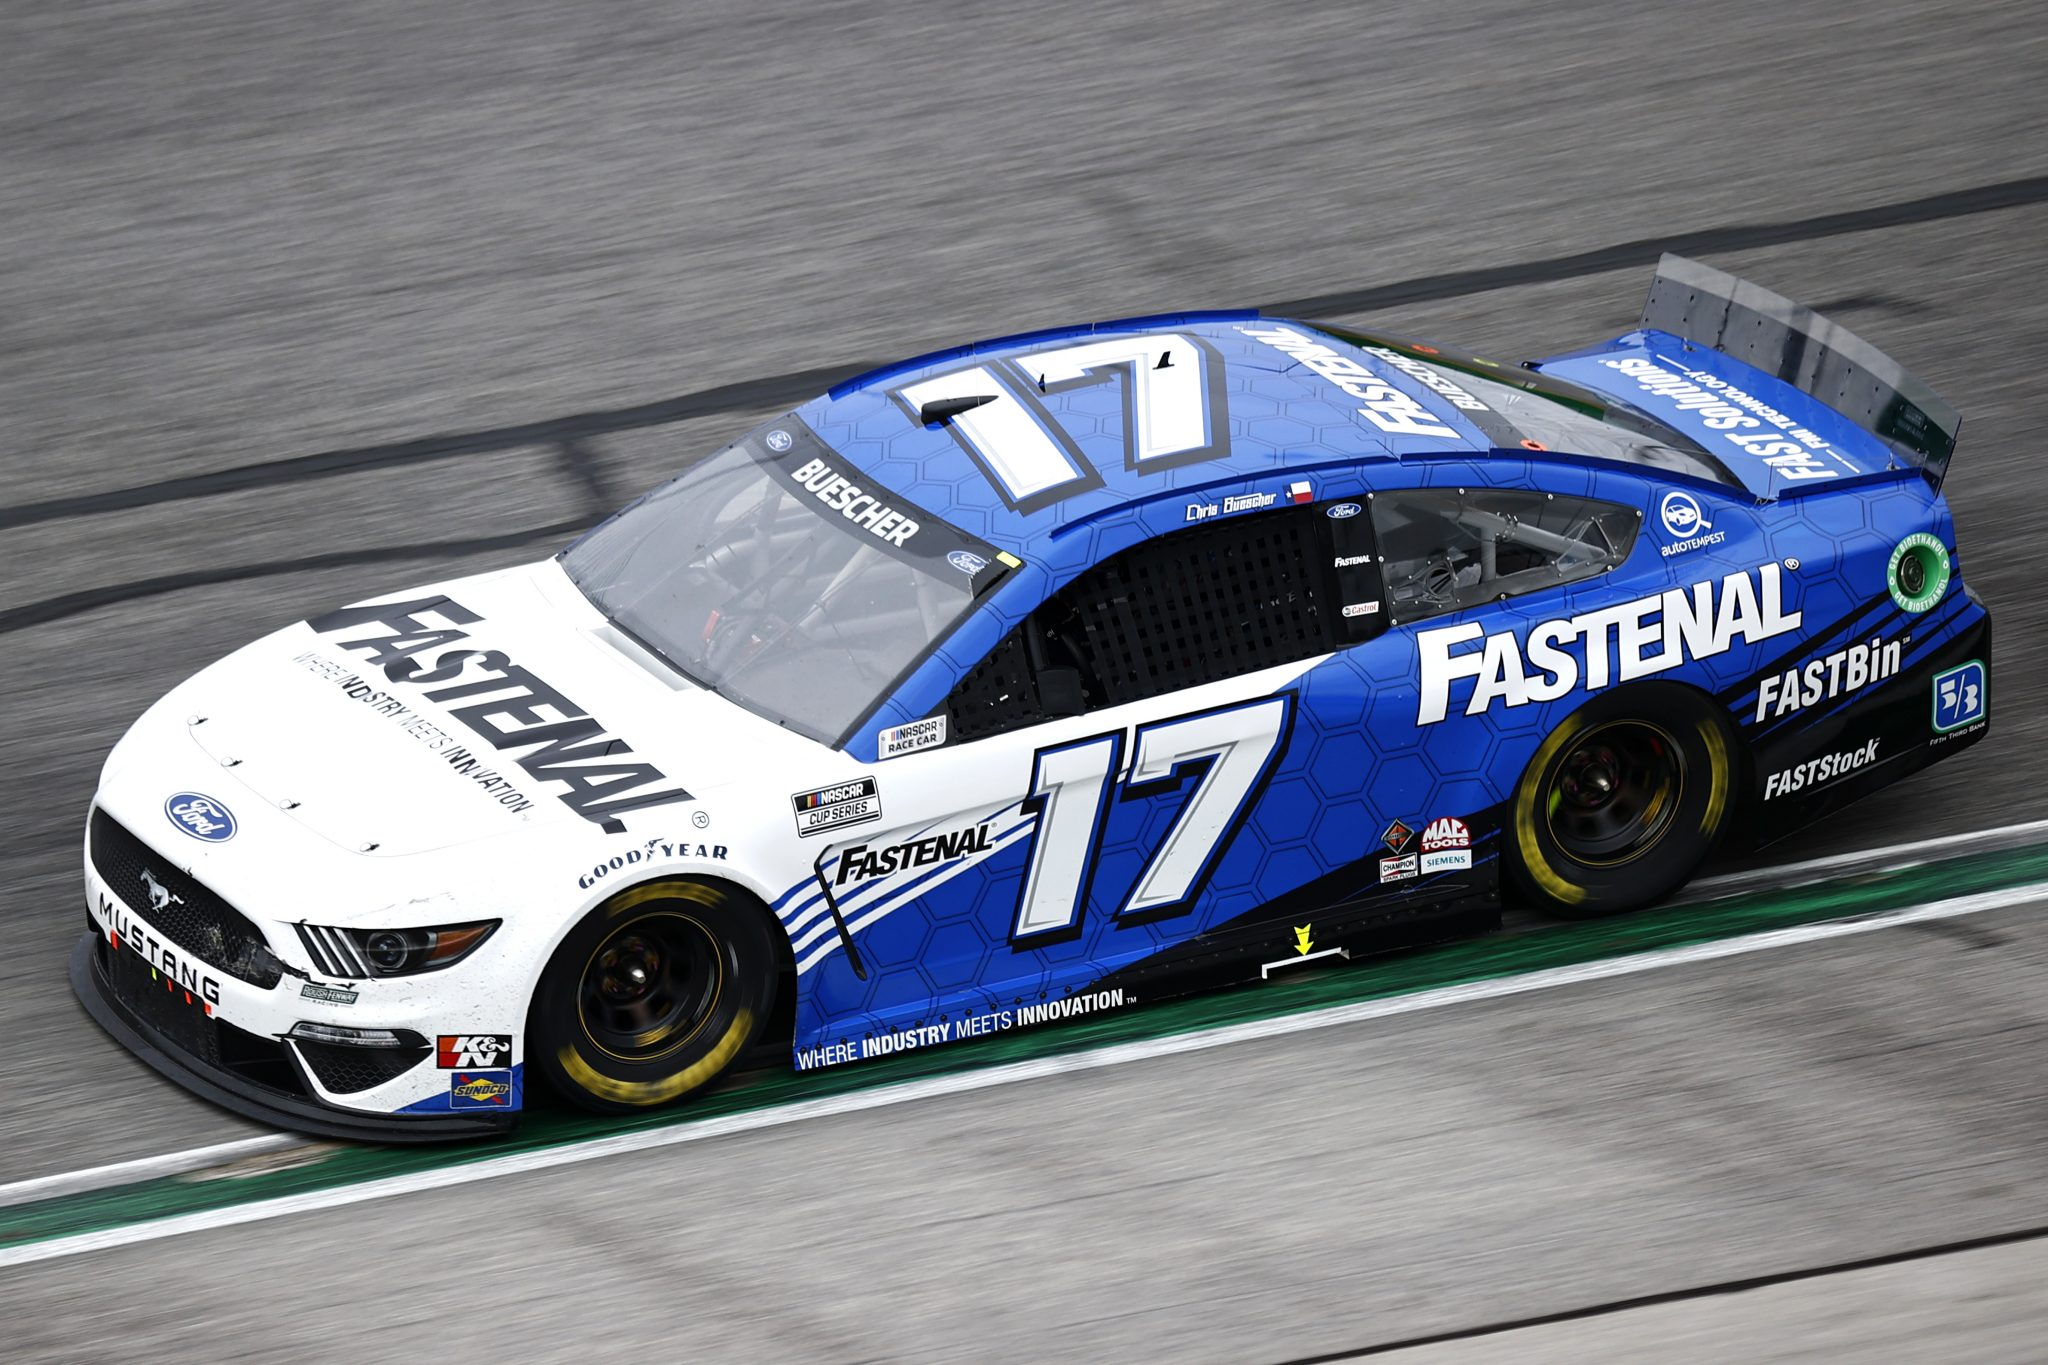 HAMPTON, GEORGIA - JULY 11: Chris Buescher, driver of the #17 Fastenal Ford, drives during the NASCAR Cup Series Quaker State 400 presented by Walmart at Atlanta Motor Speedway on July 11, 2021 in Hampton, Georgia. (Photo by Jared C. Tilton/Getty Images) | Getty Images